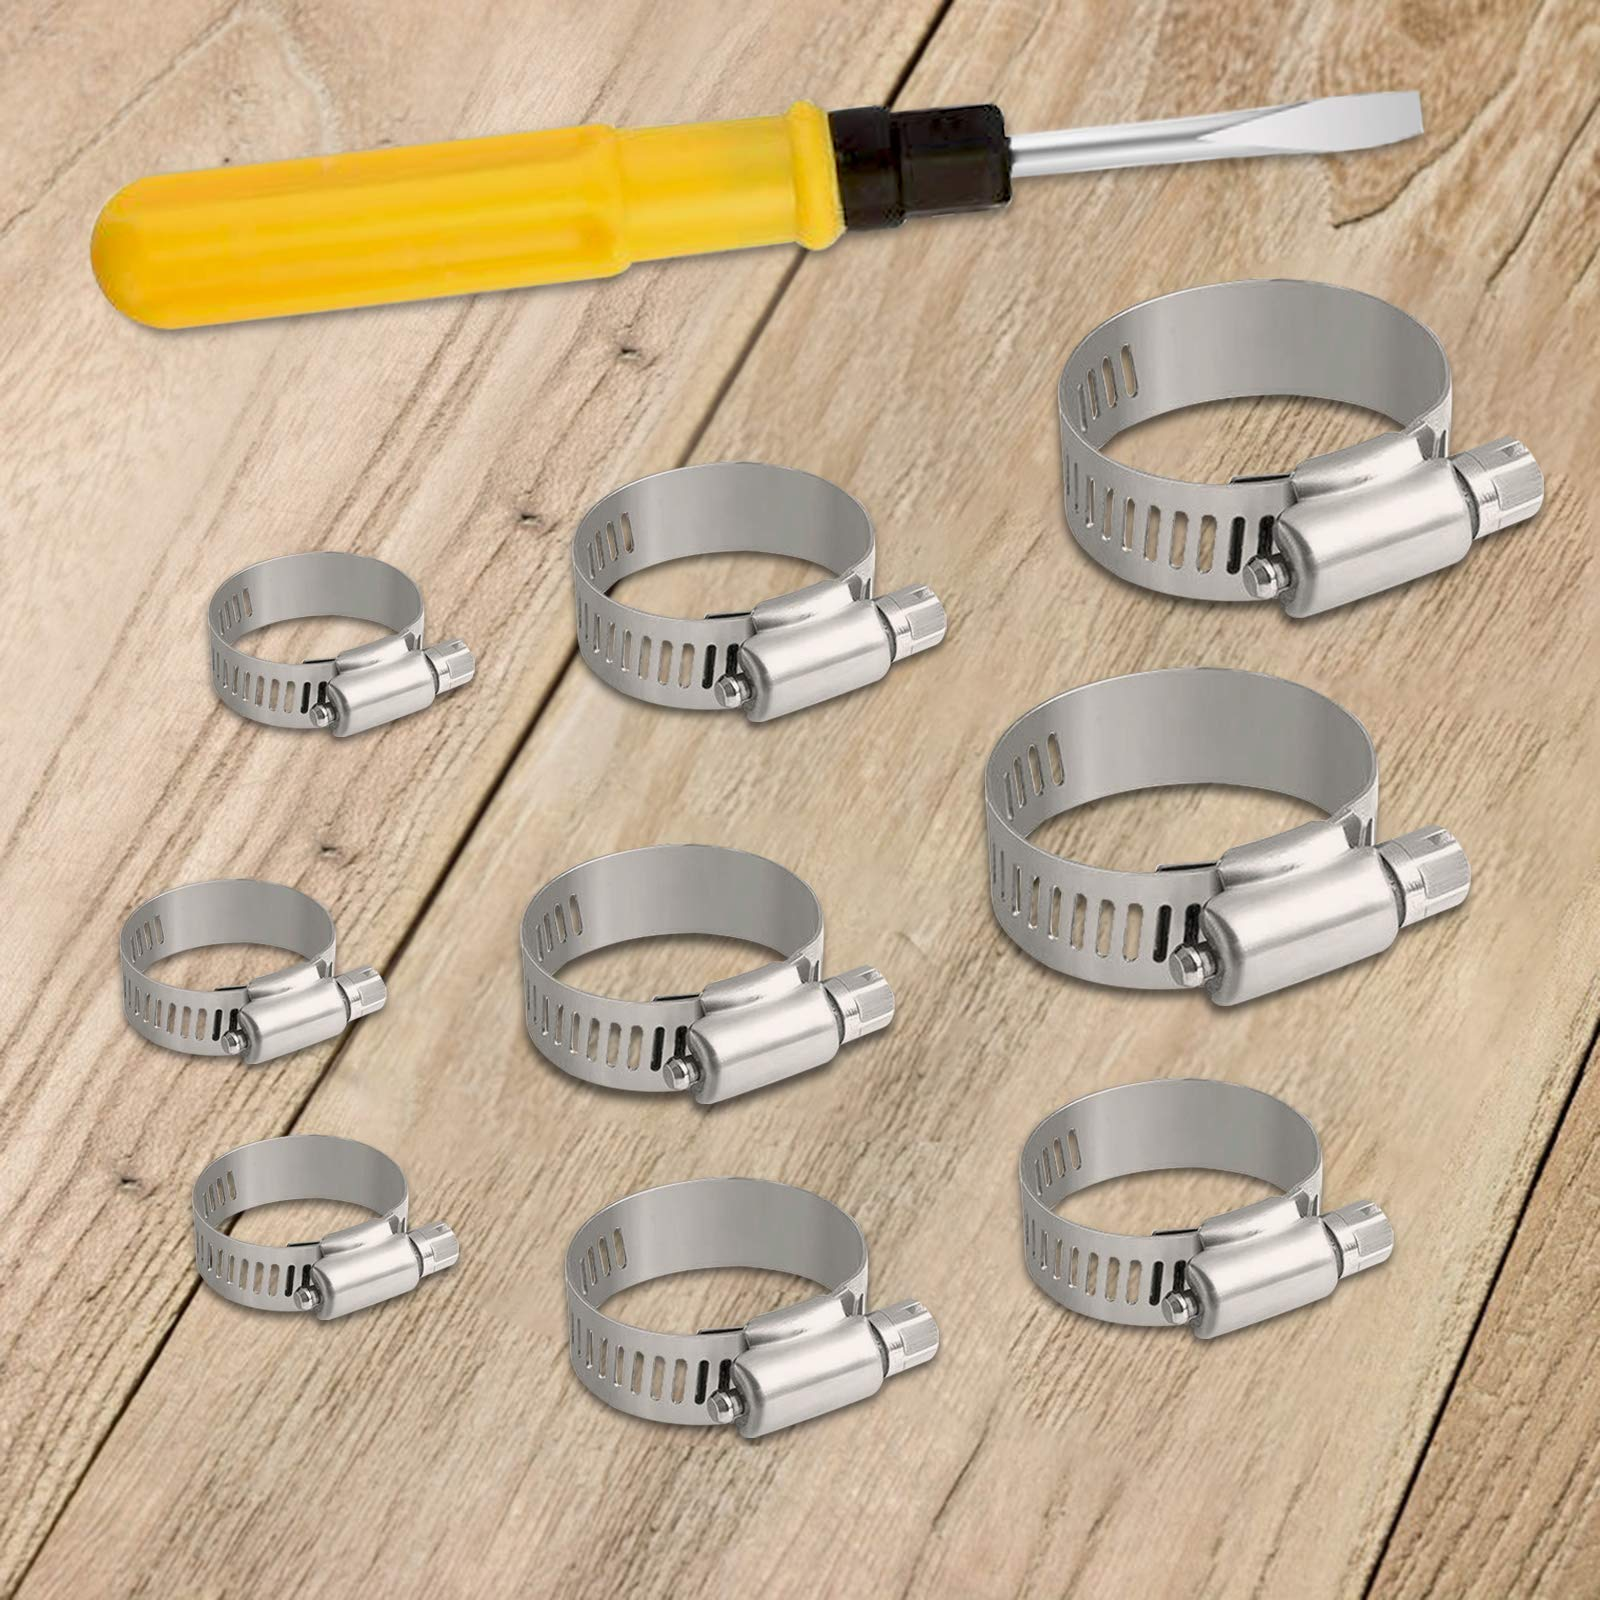 Matogle 24pcs Stainless Steel Hose Clips Adjustable Hose Clamps Jubilee Clip of Multi Size for Home Worm Drive Gear Gas Water Pipe Duct Tube with Screwdriver